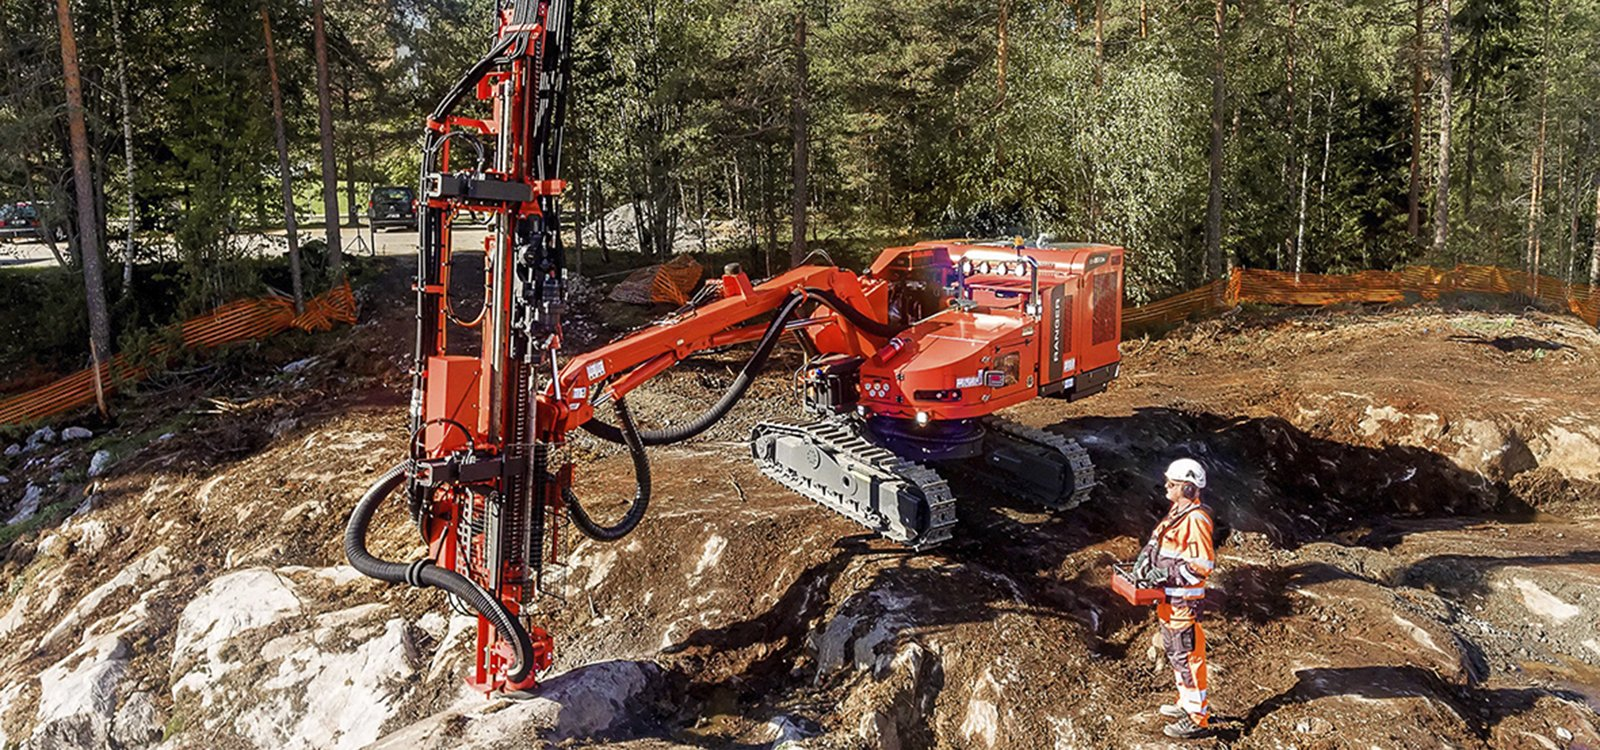 <p>The new non-cabin Ranger DXR series surface rigs offer the reliability and large drilling coverage area of the conventional Ranger DX series drill rigs, in a lighter and more mobile package.</p>